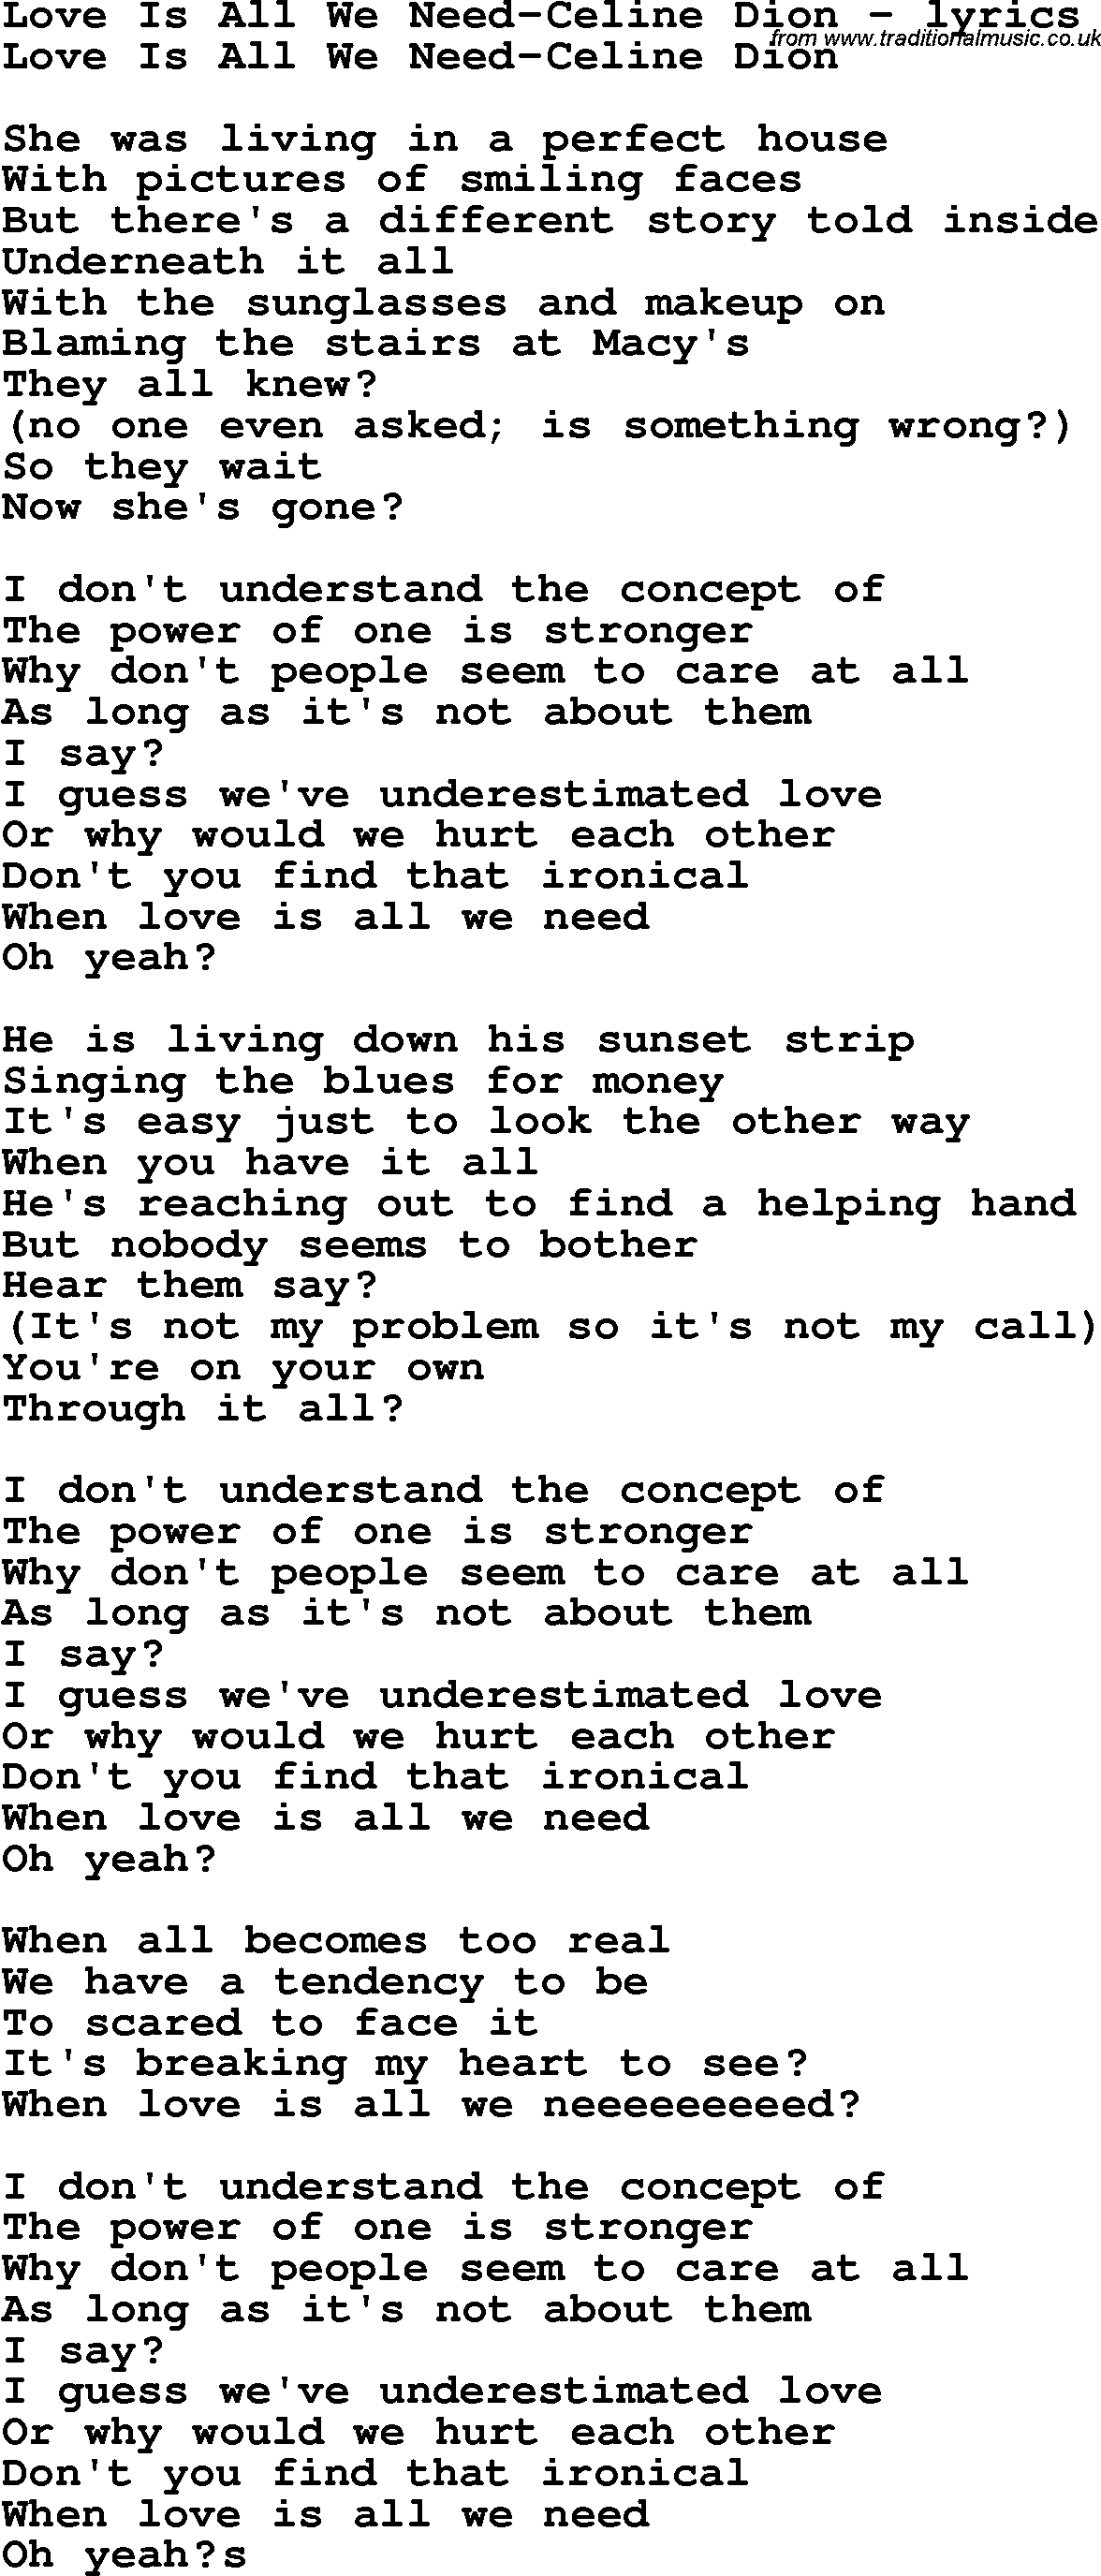 through it all lyrics